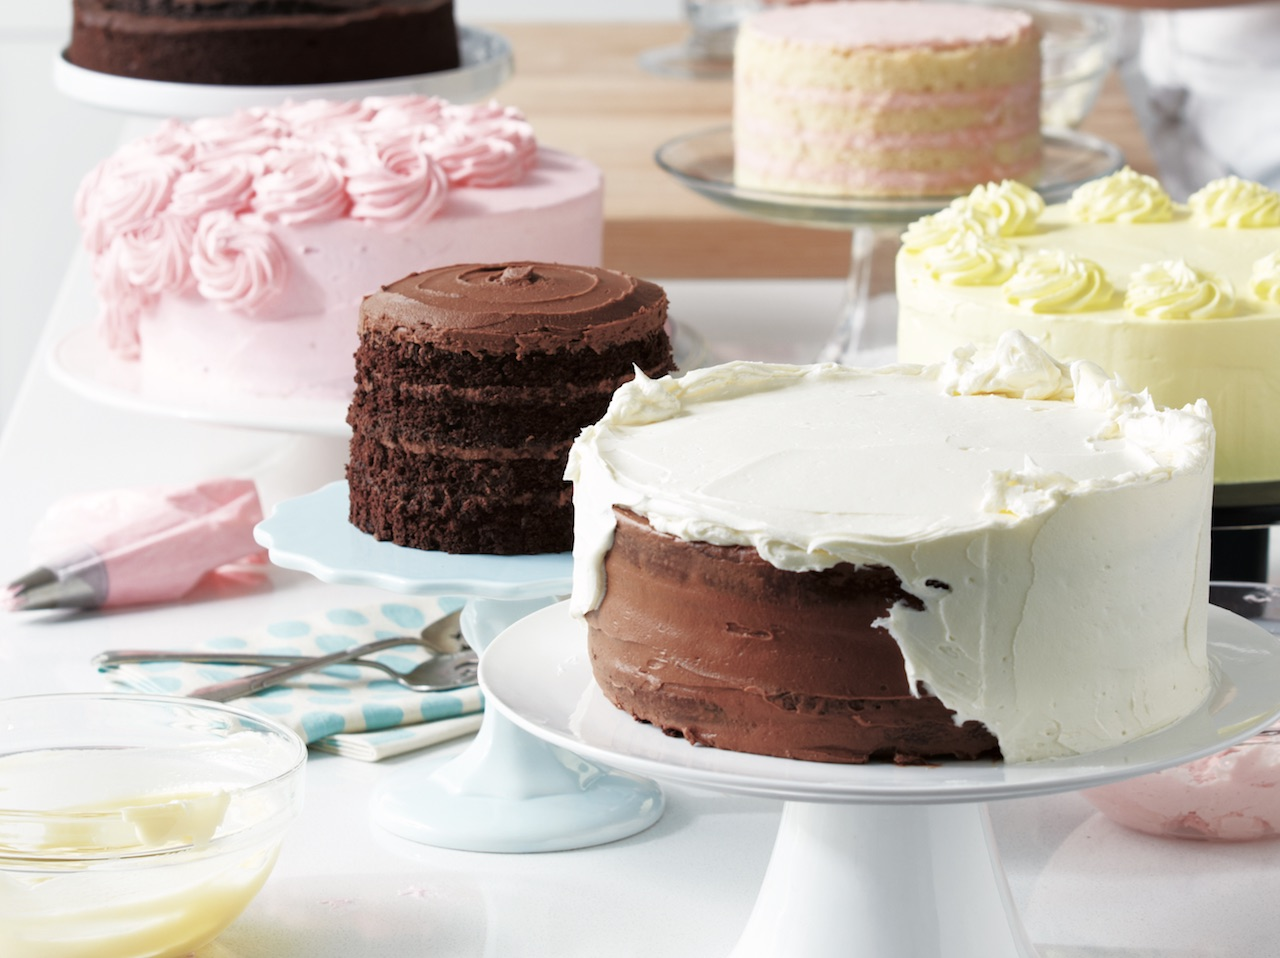 Colourful Cakes On Cake Stands Rules To Making The Perfect